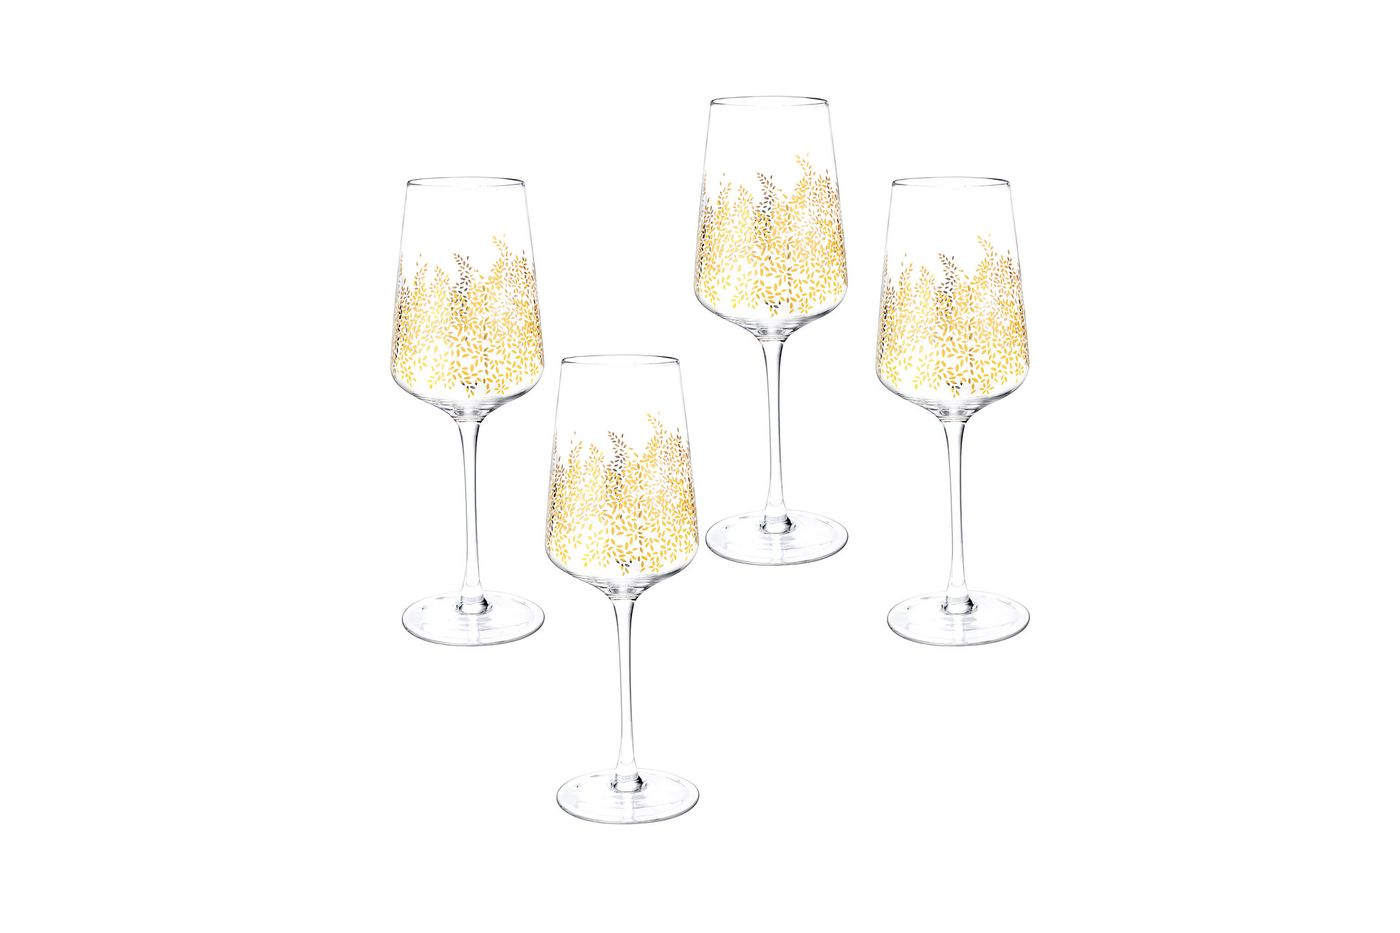 Sara Miller London for Portmeirion Chelsea Collection Set of 4 Wine Glasses 0.26l thumb 1